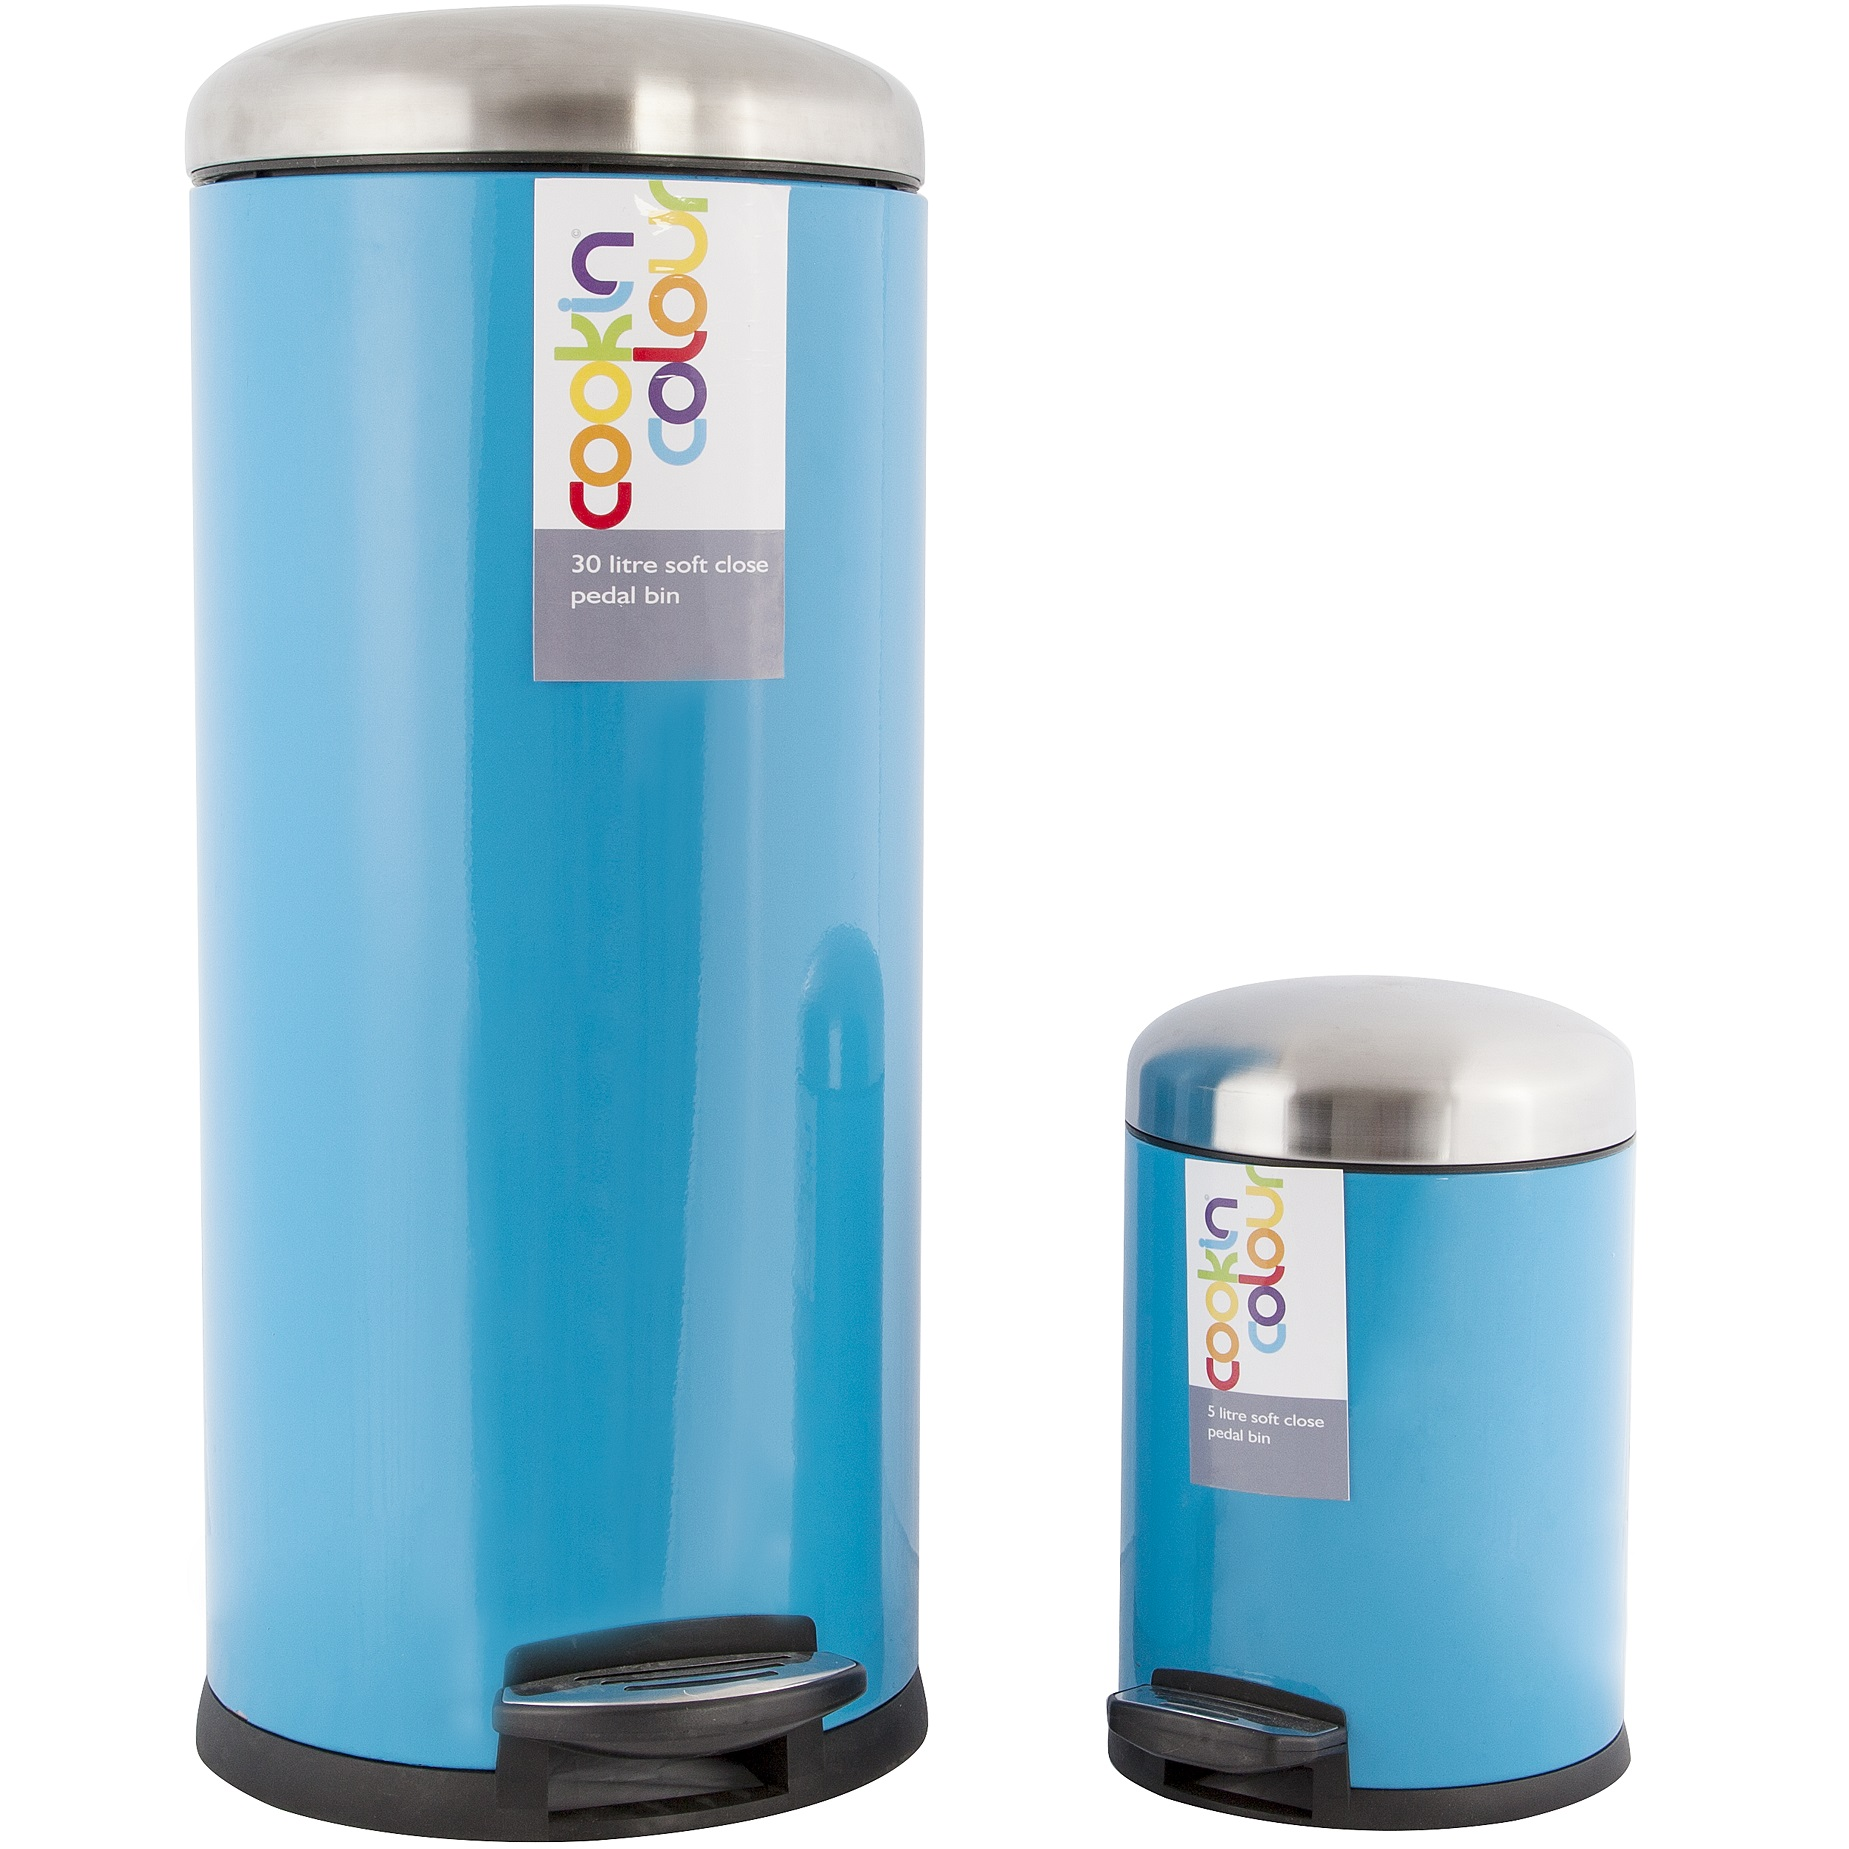 NEW COOKIN COLOUR SET OF TWO 30L 5L SOFT CLOSE KITCHEN WASTE PEDAL ...